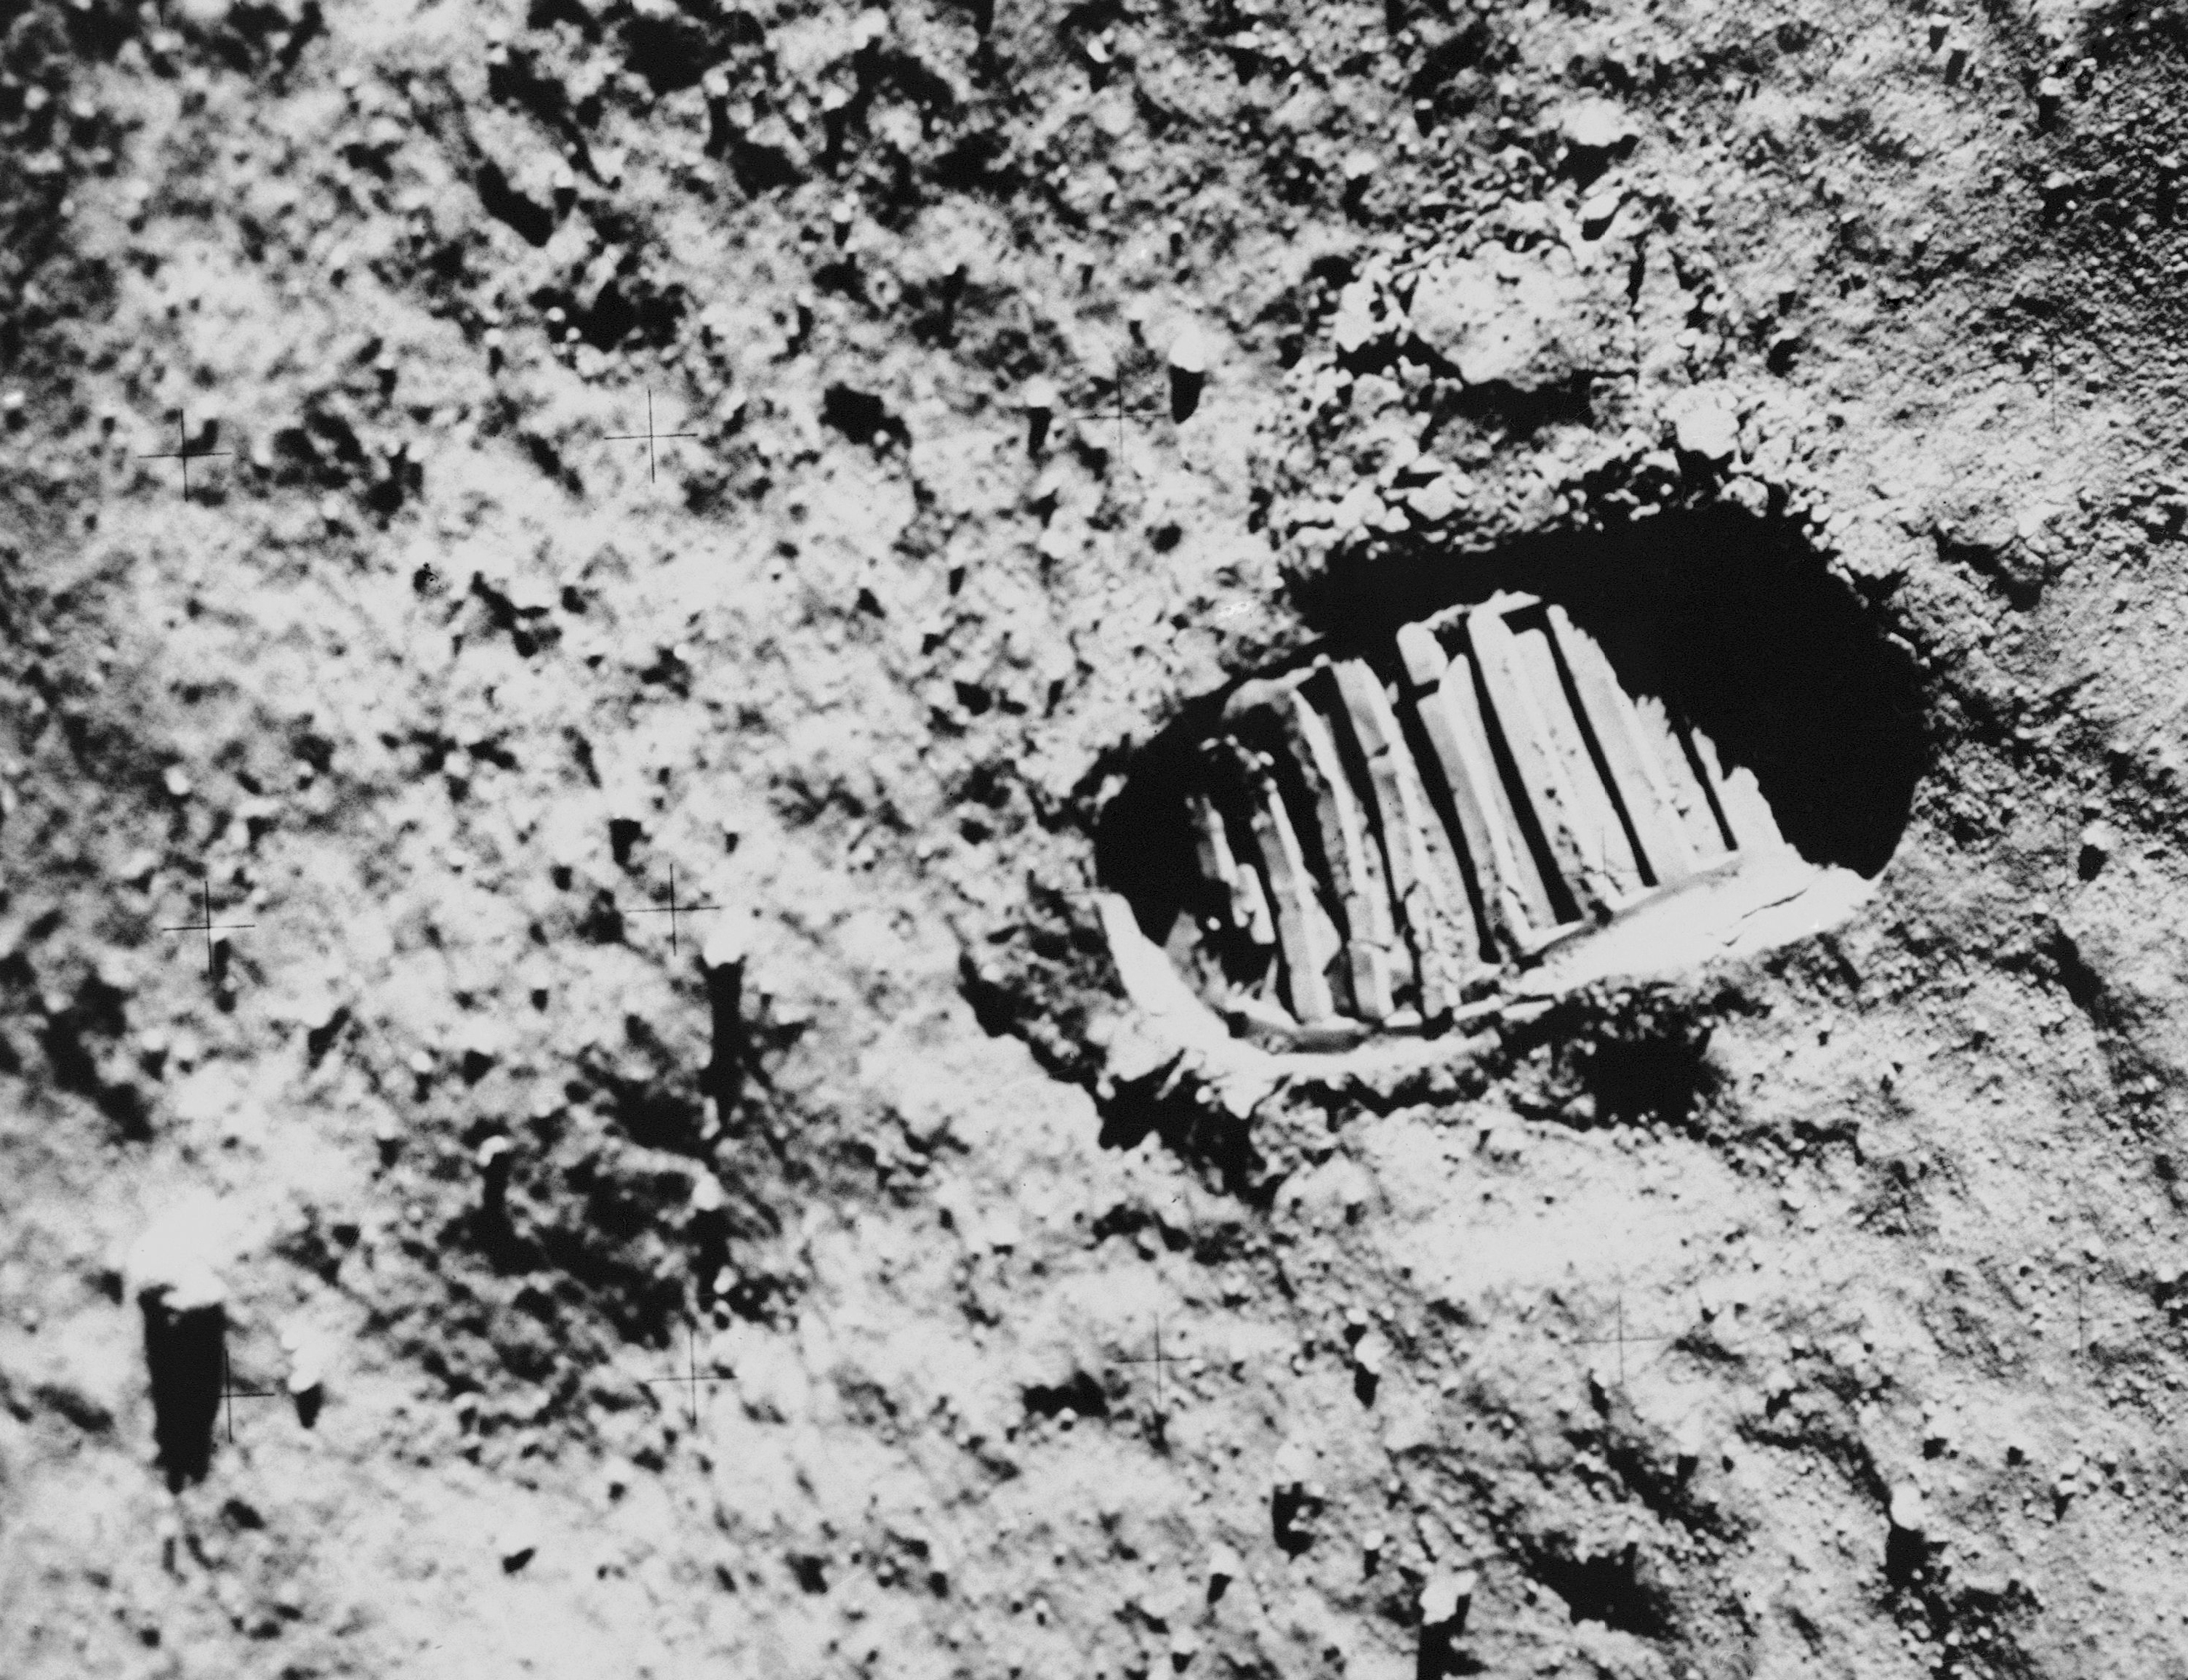 How to celebrate the moon landing anniversary in the Bay Area